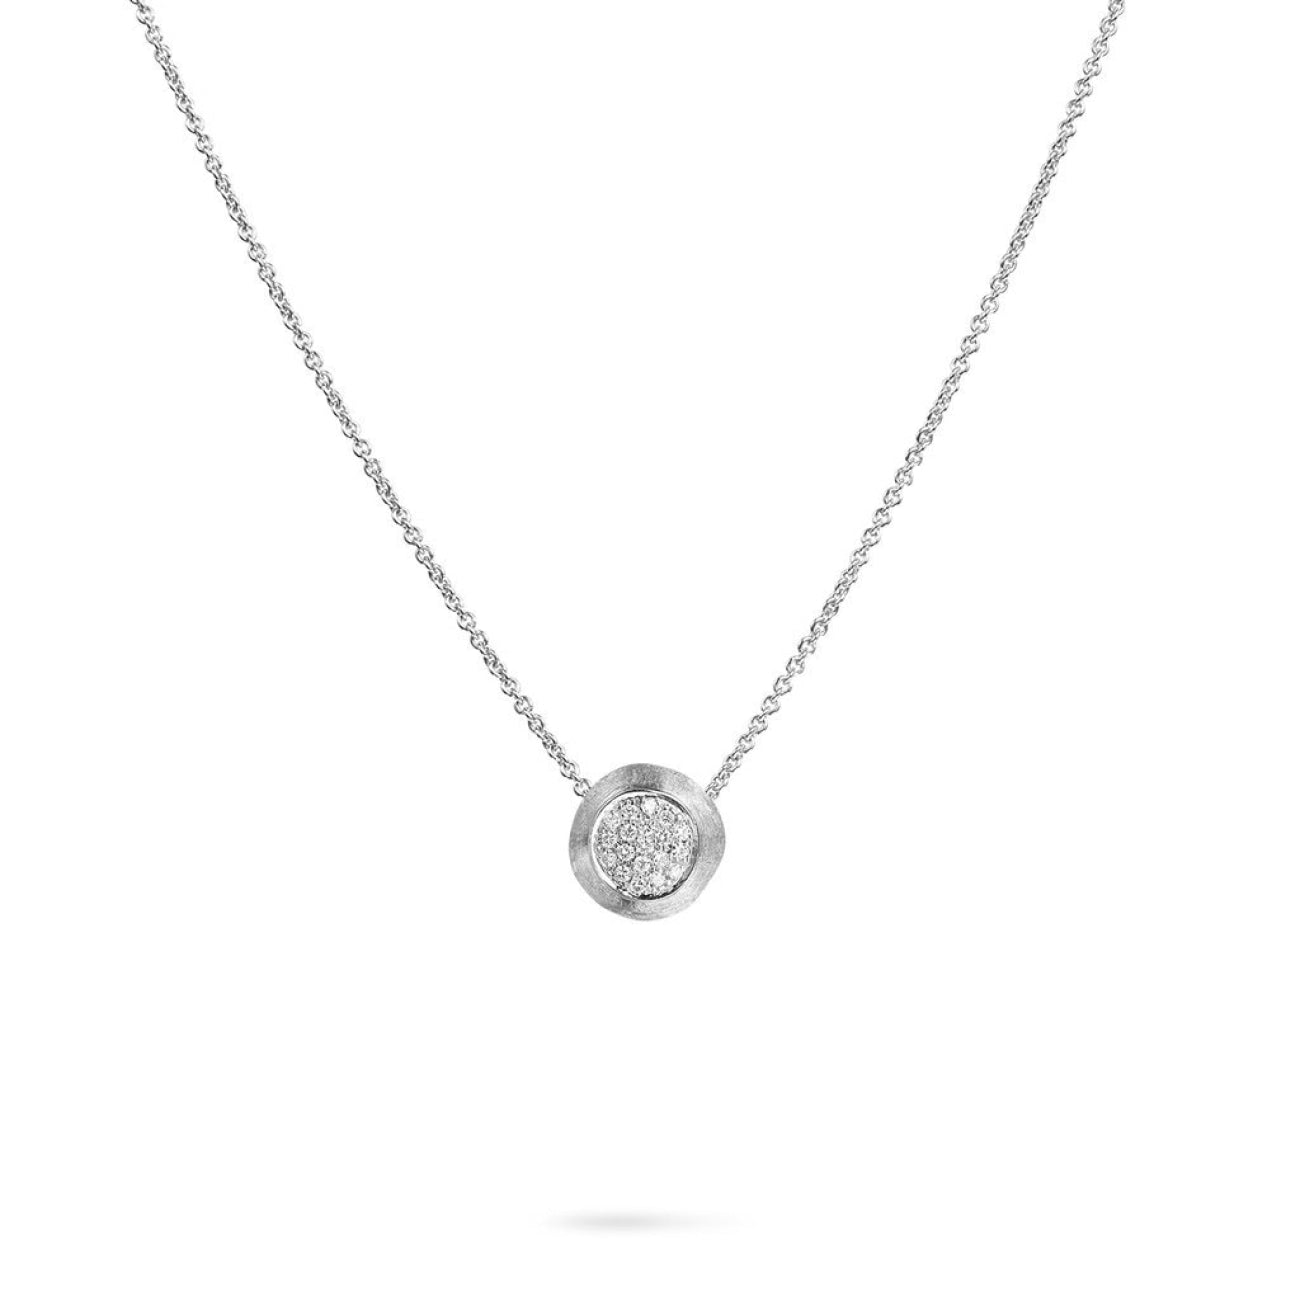 Marco Bicego Jewelry - 18K White Gold Jaipur Diamond White Pendant Necklace | Manfredi Jewels